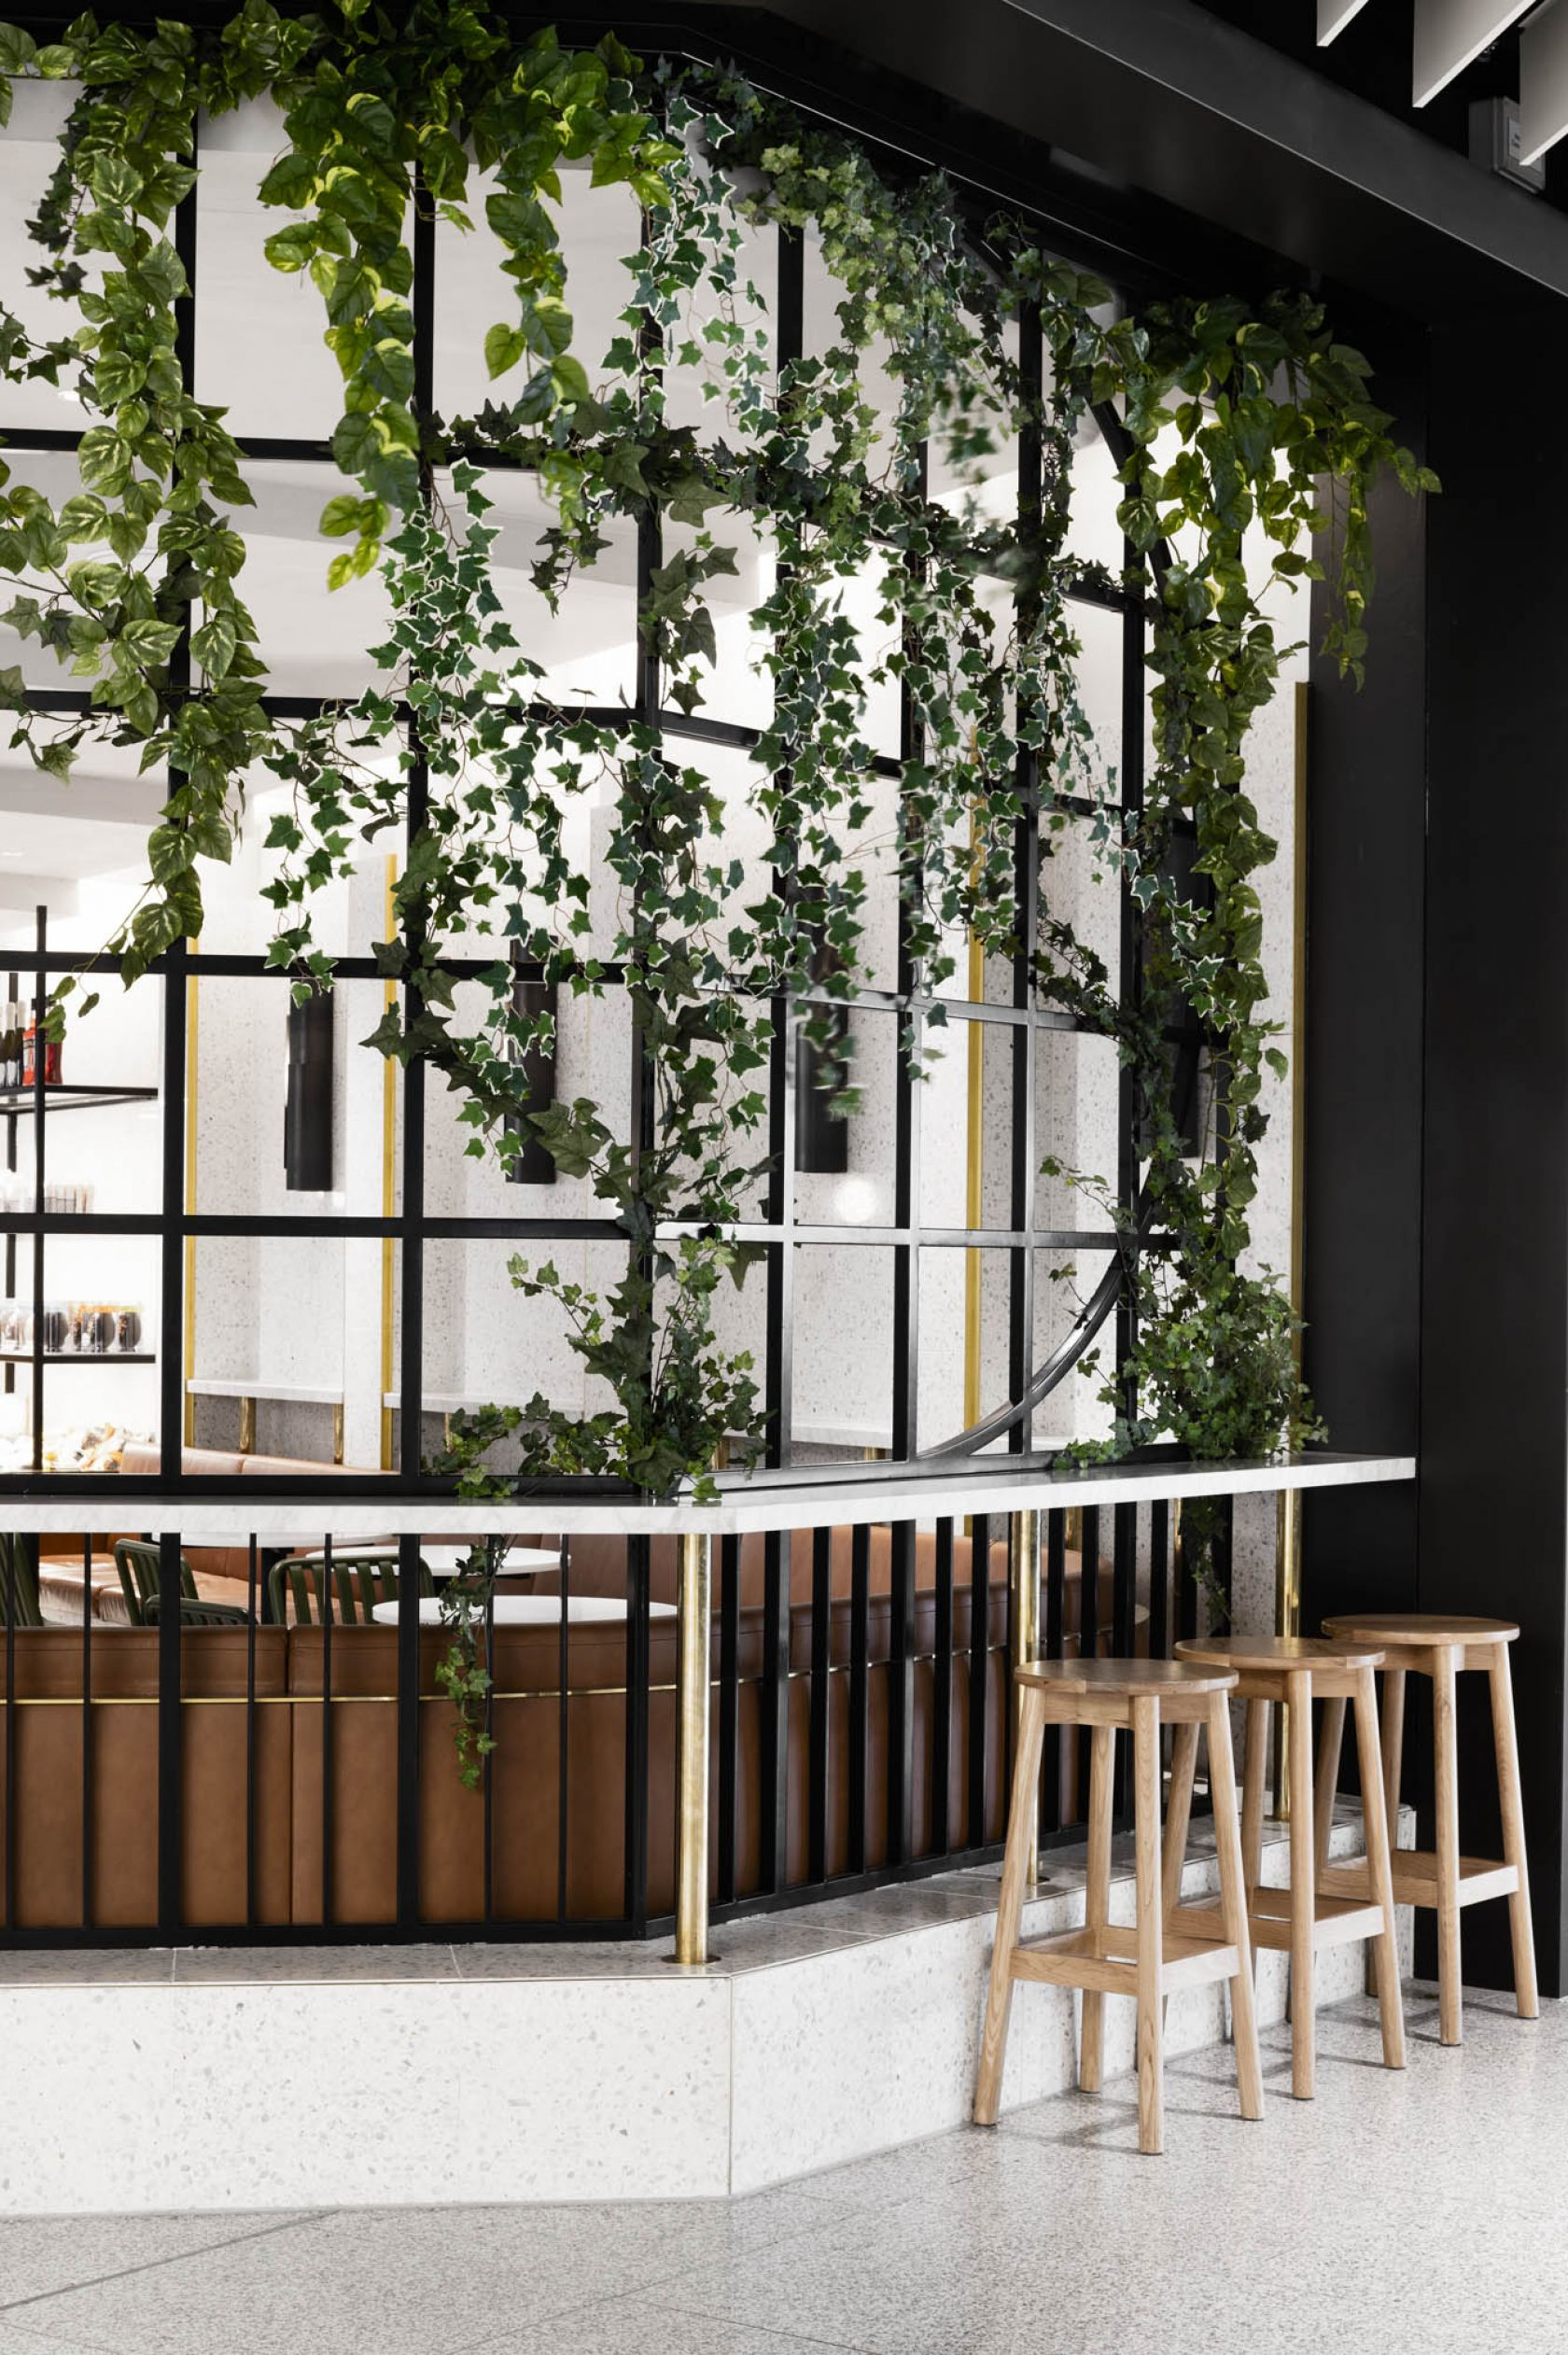 brunetti t2 hospitality interior fitout vic melbourne airport greenery stools table exterior